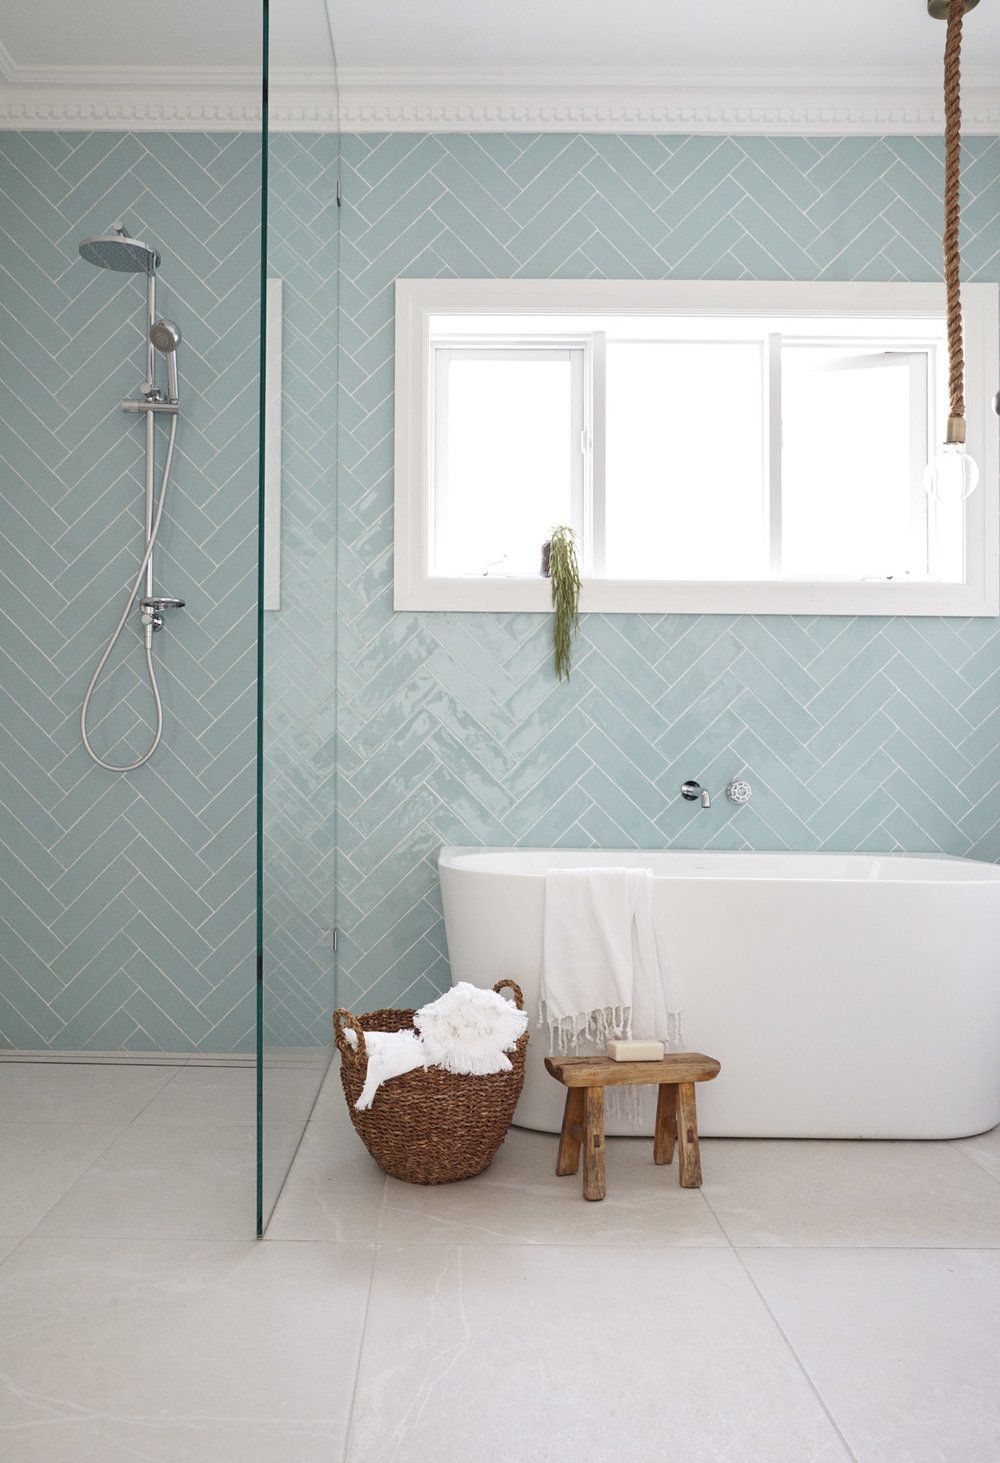 designers} Three Birds Renovations, Australia | Curated Bathroom ...